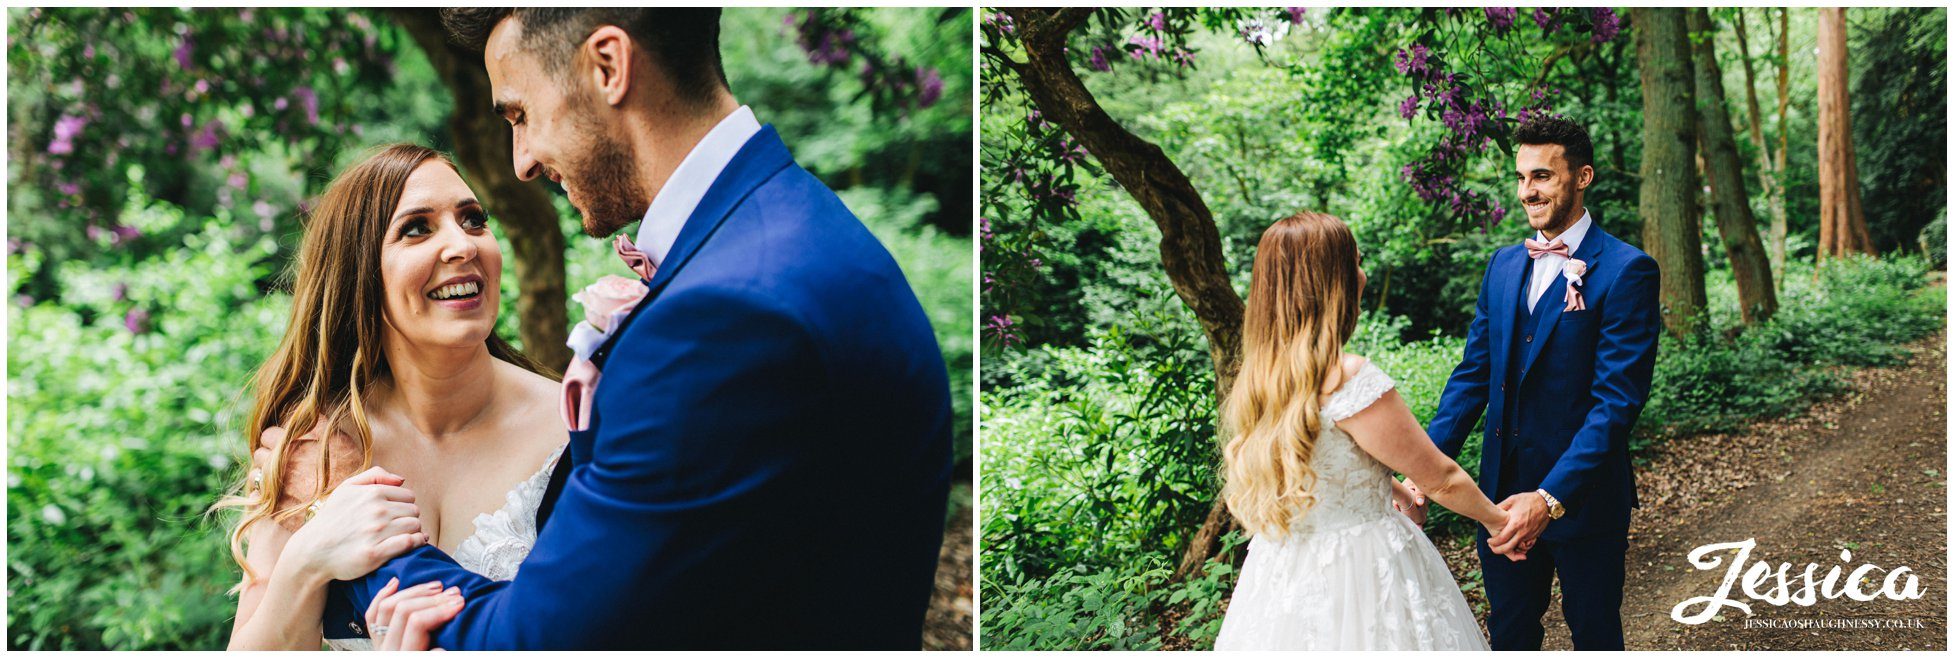 the bride and groom have their portraits taken in the woods